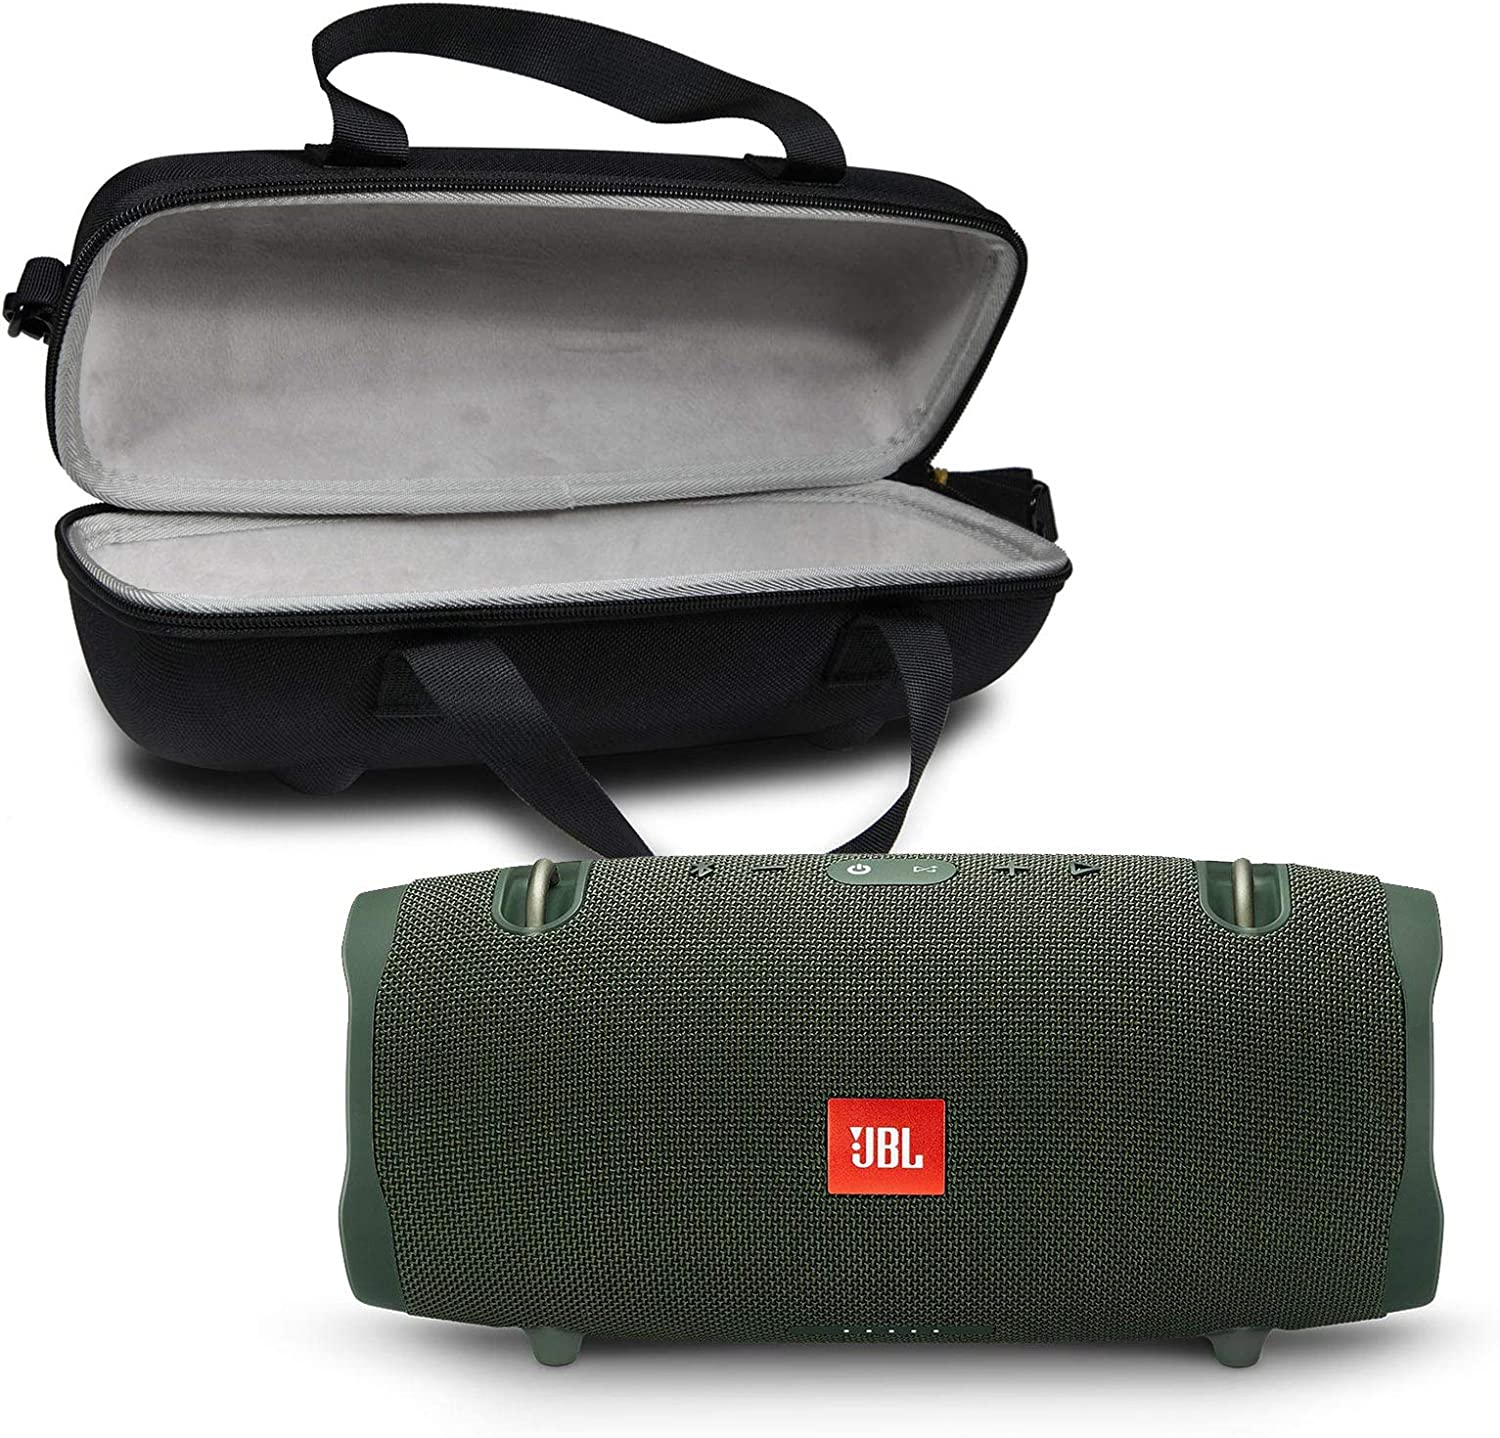 40% OFF Cheap Sale JBL Xtreme 2 Portable Bluetooth Speaker H Waterproof with New popularity Bundle